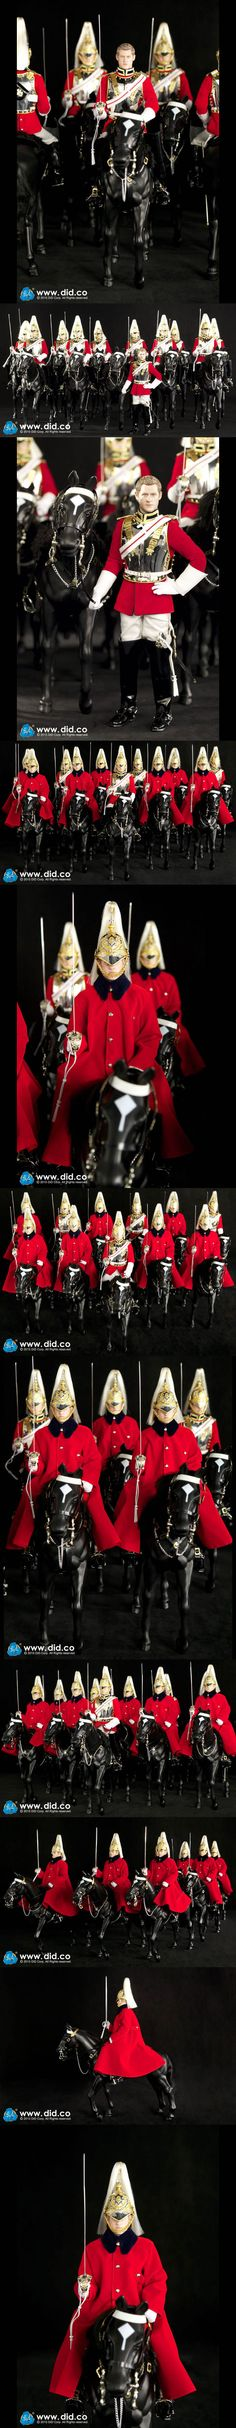 [DID - K80108 - The Life Guards]